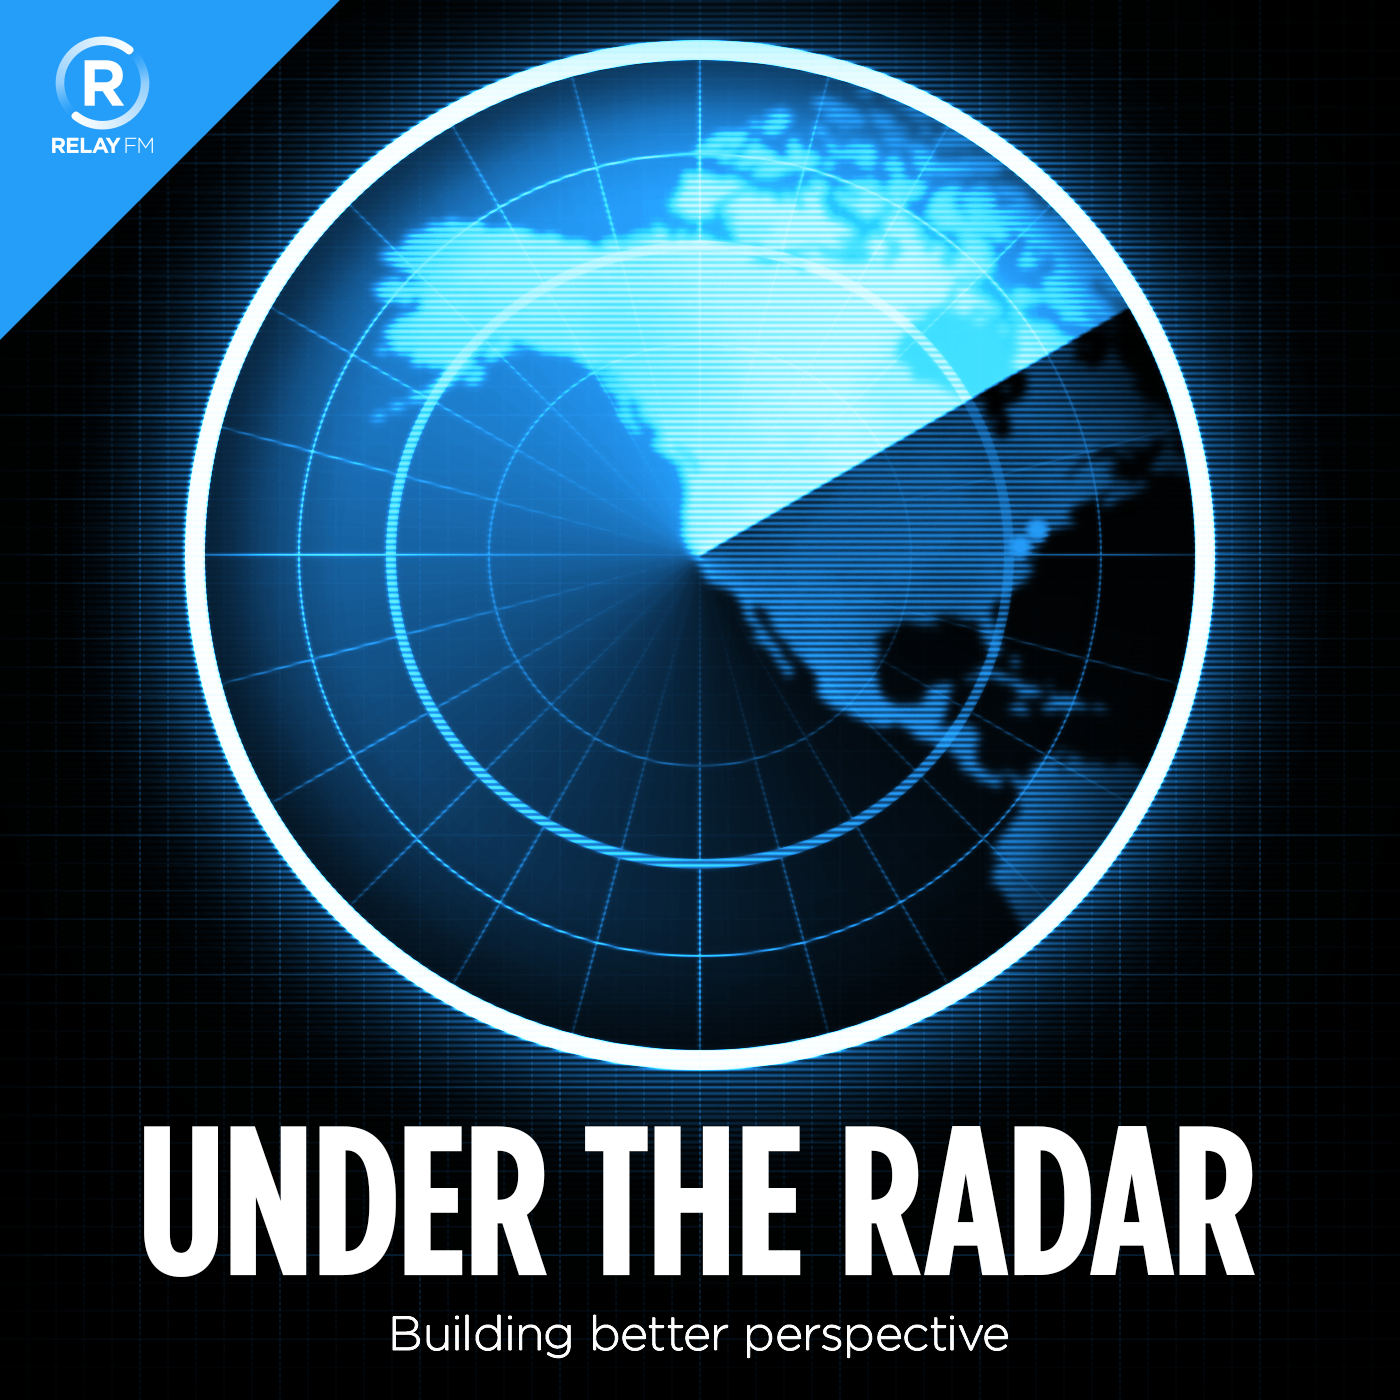 Broadcast artwork radar artwork